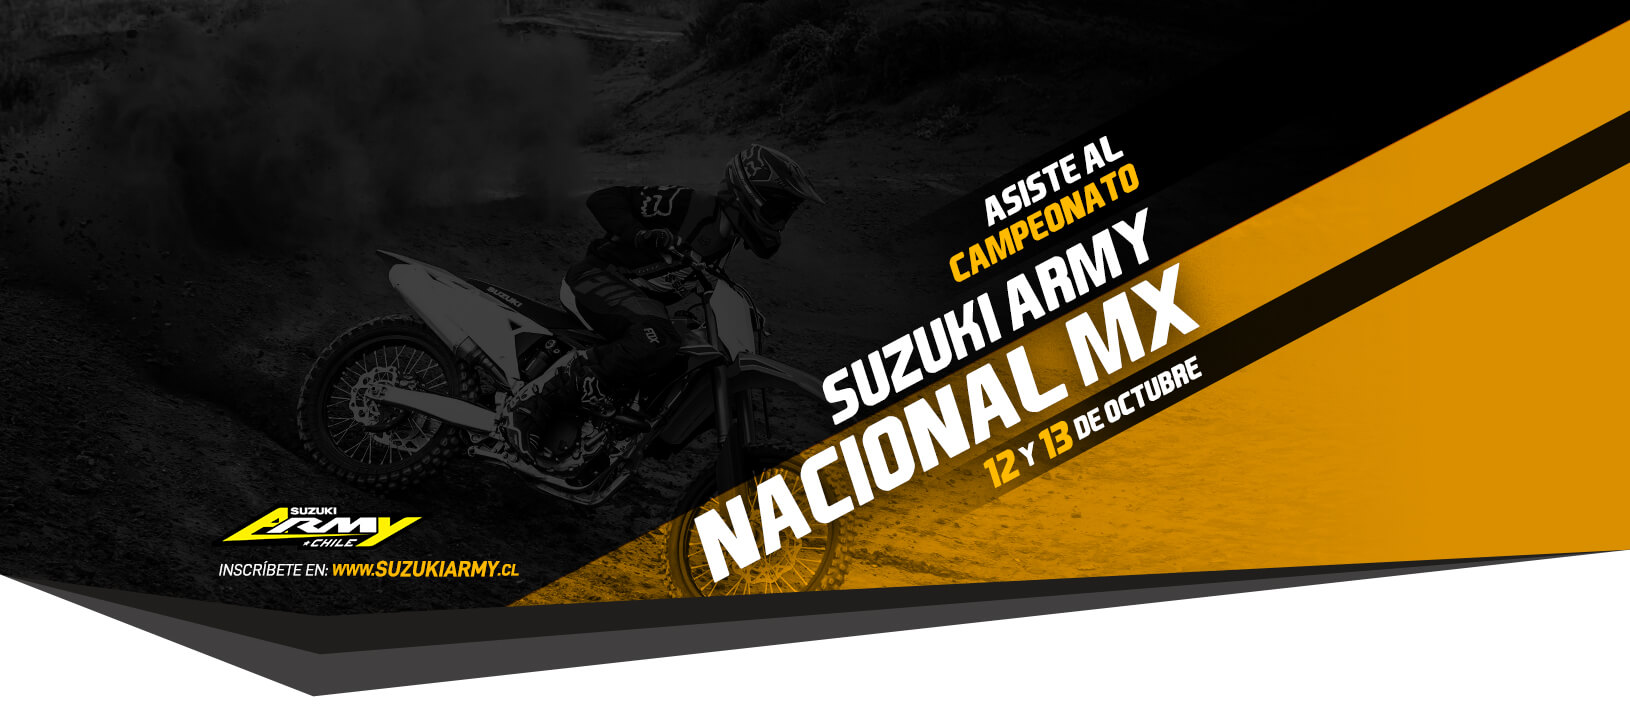 Suzuki Army Nacional MX  12 y 13 de Oct